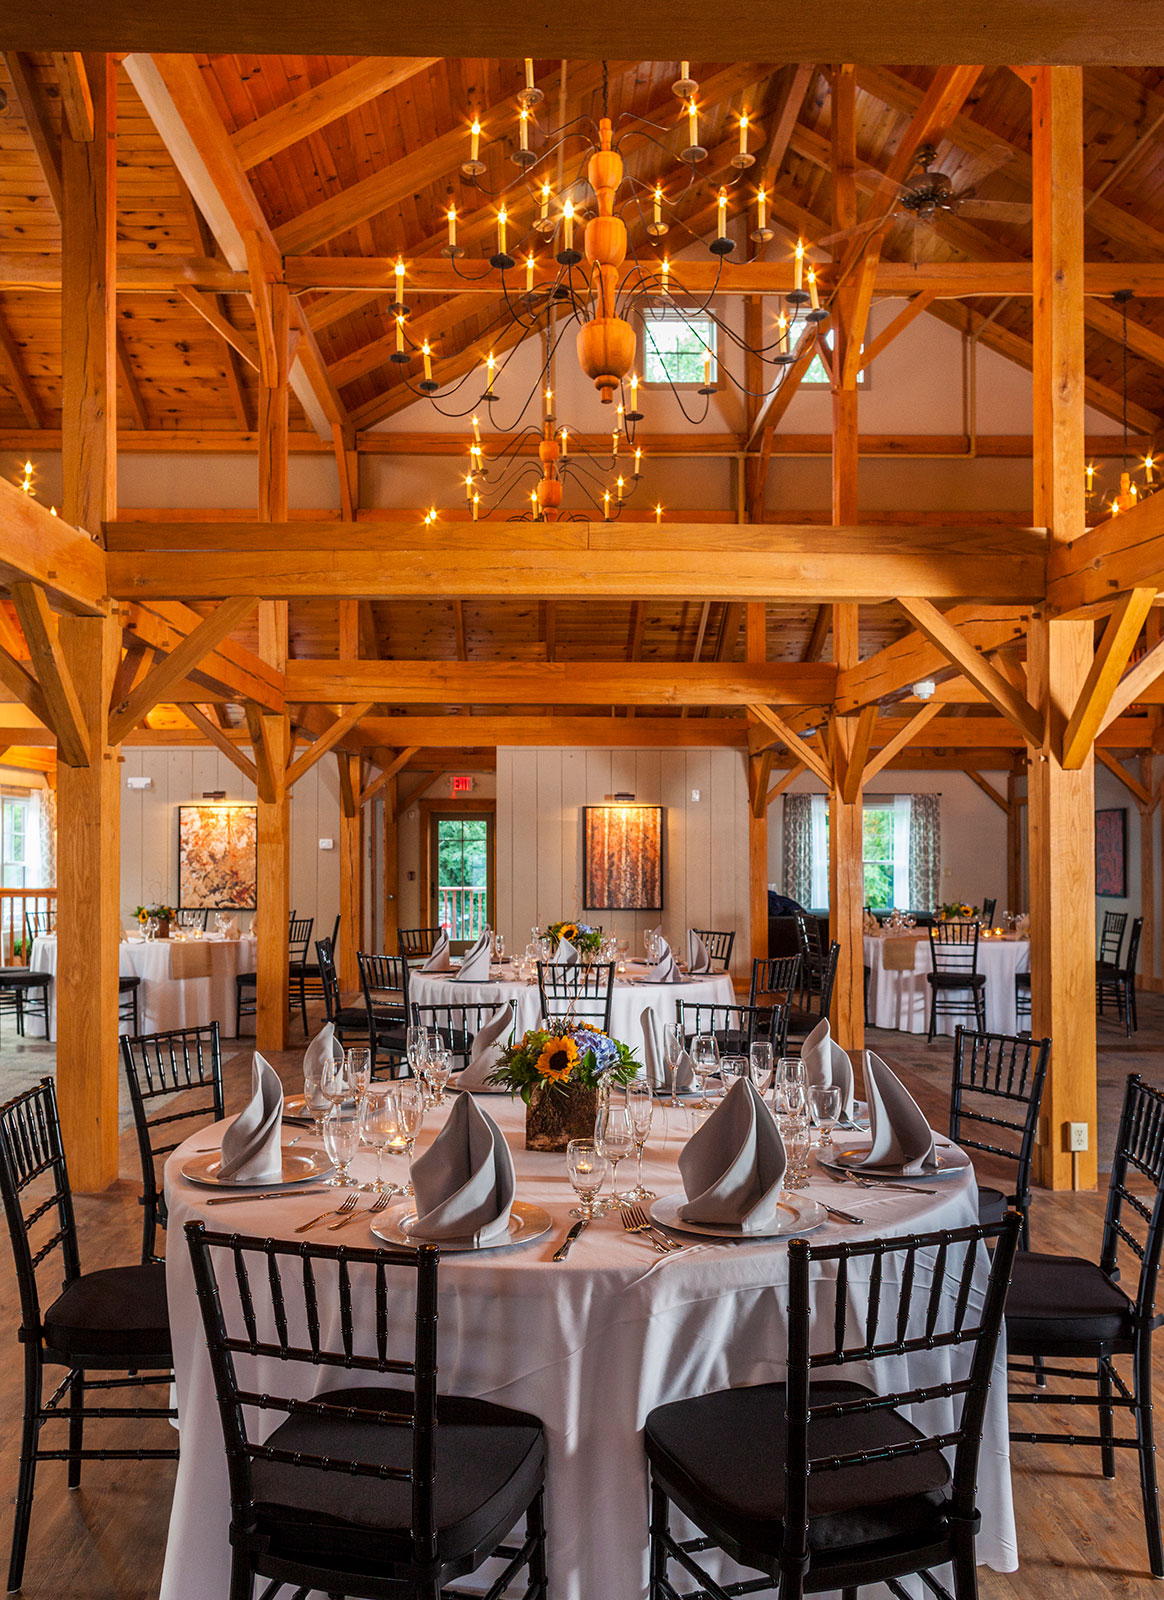 The Barn at Wight Farm The Barn at Wight Farm  Sturbridge MA  Weddings and Events